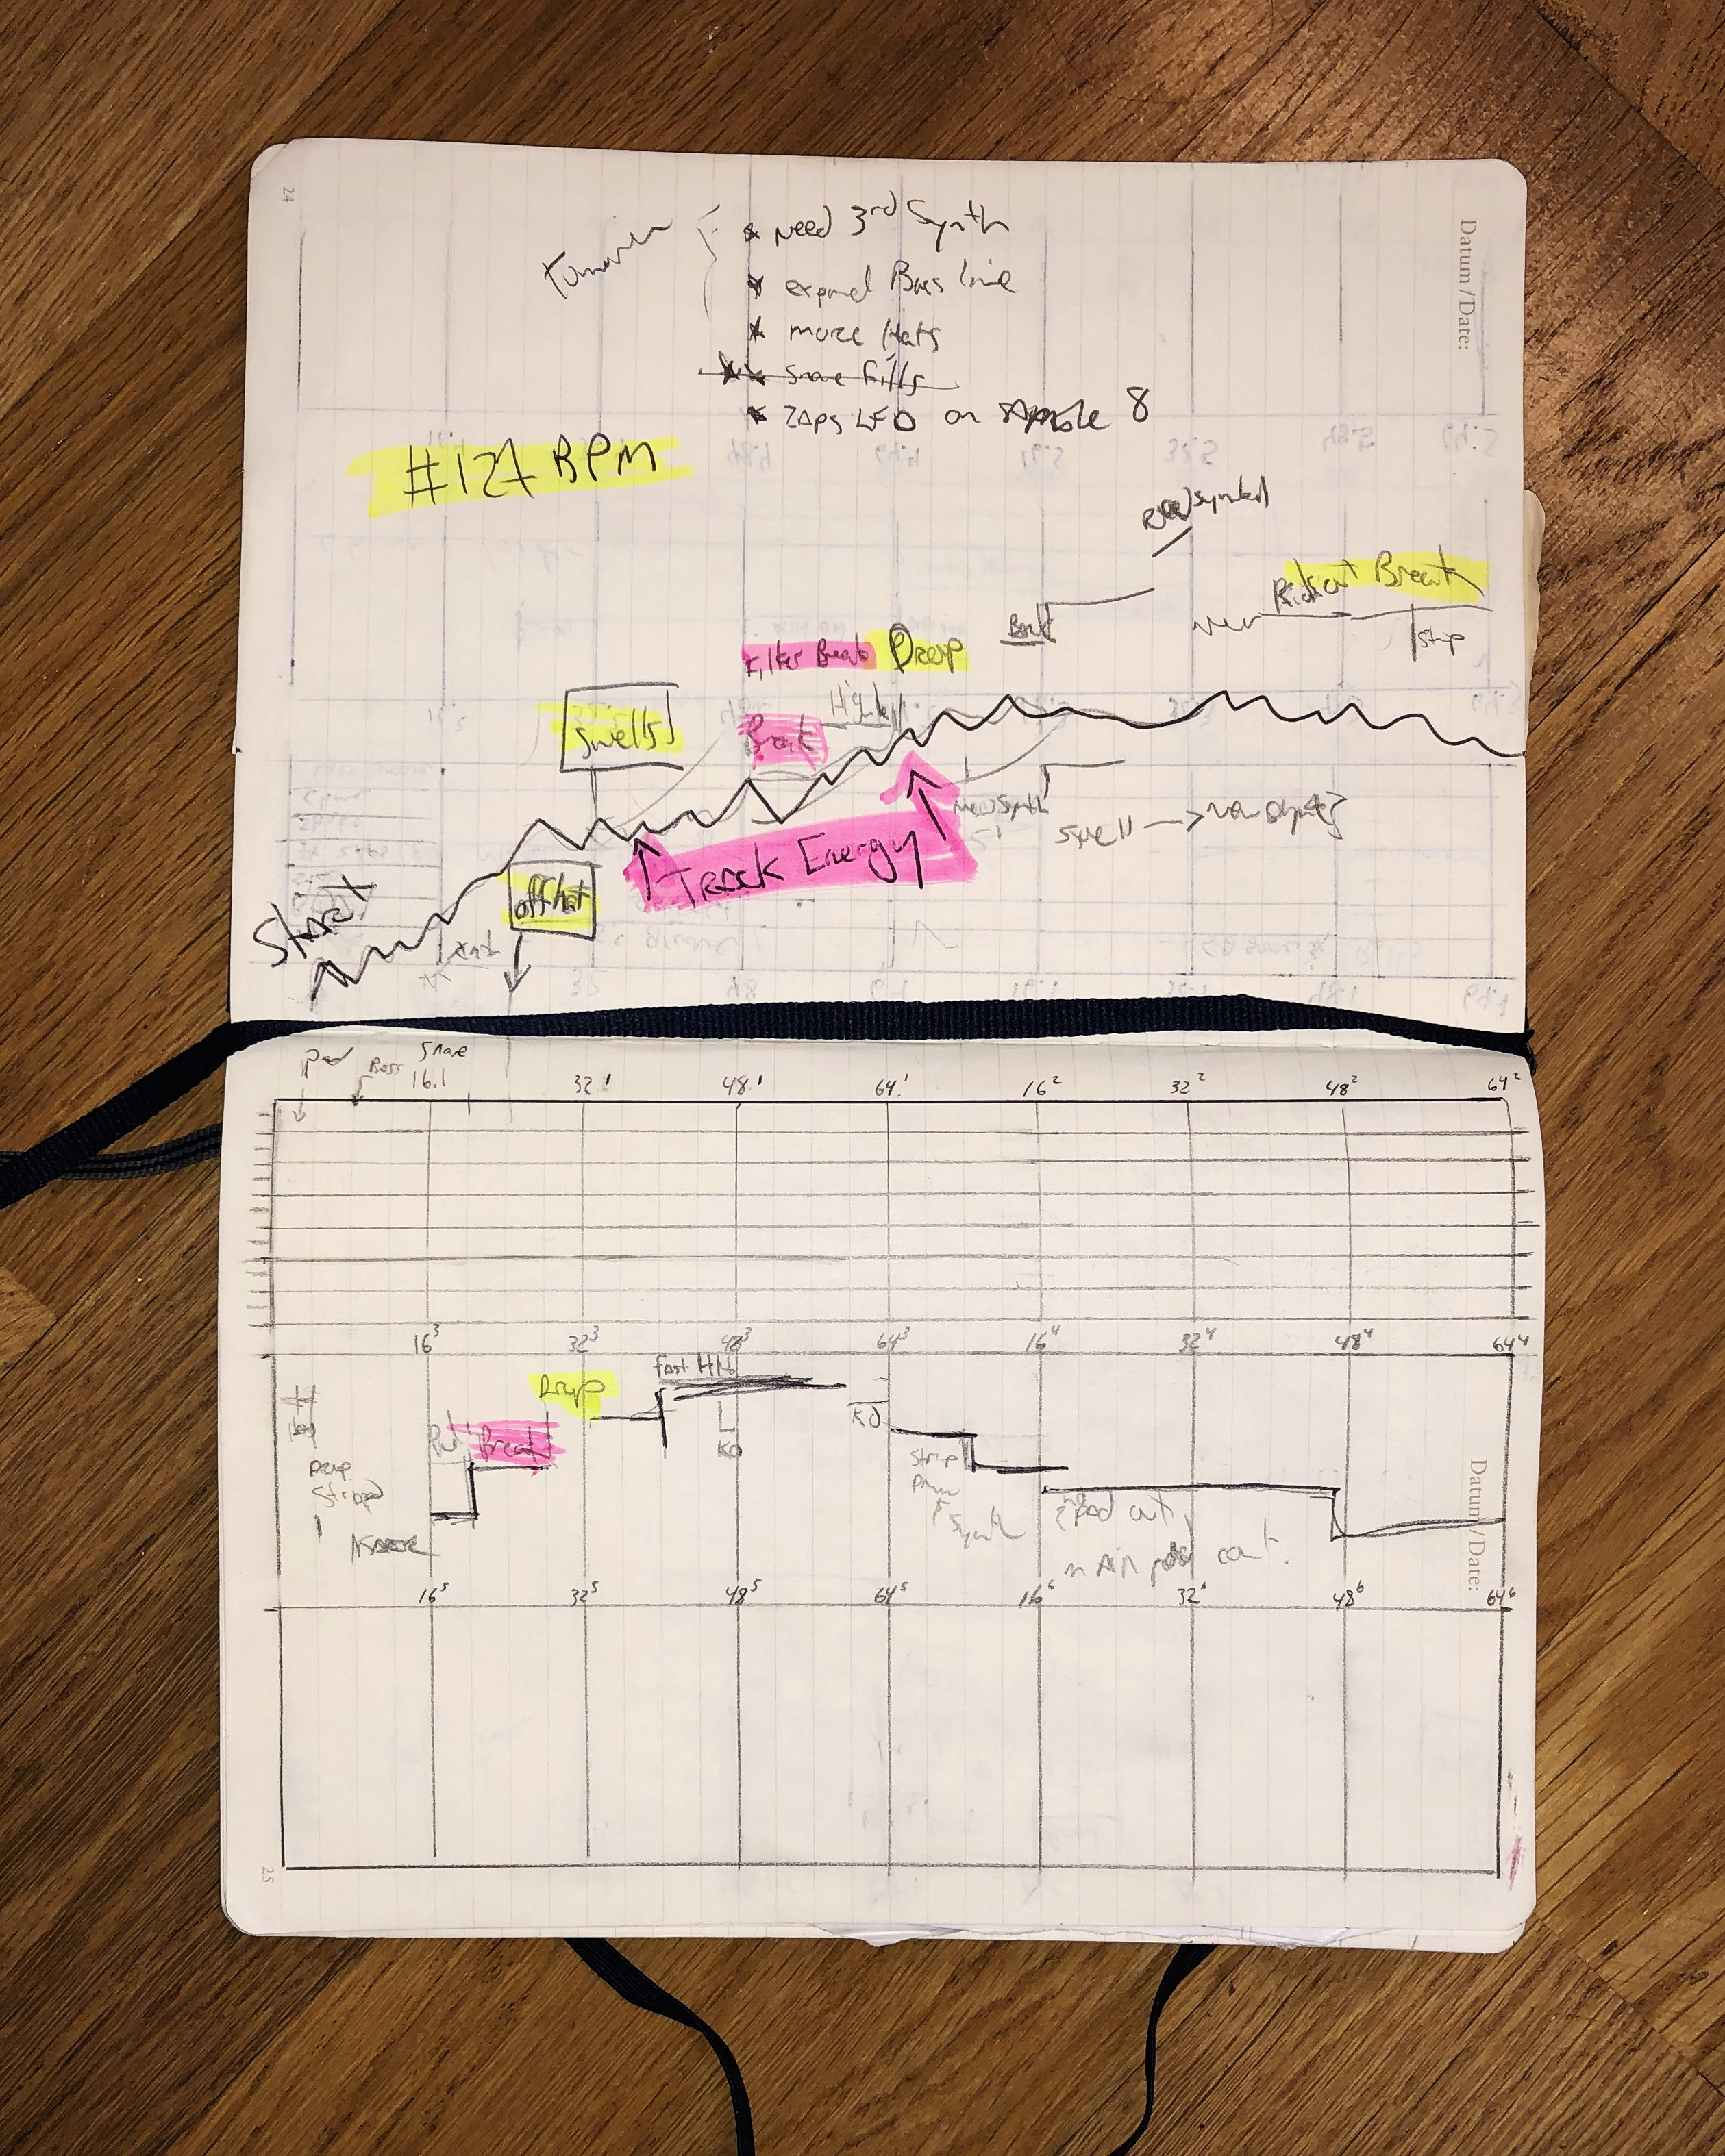 a notebook with sketches of a house music outline.